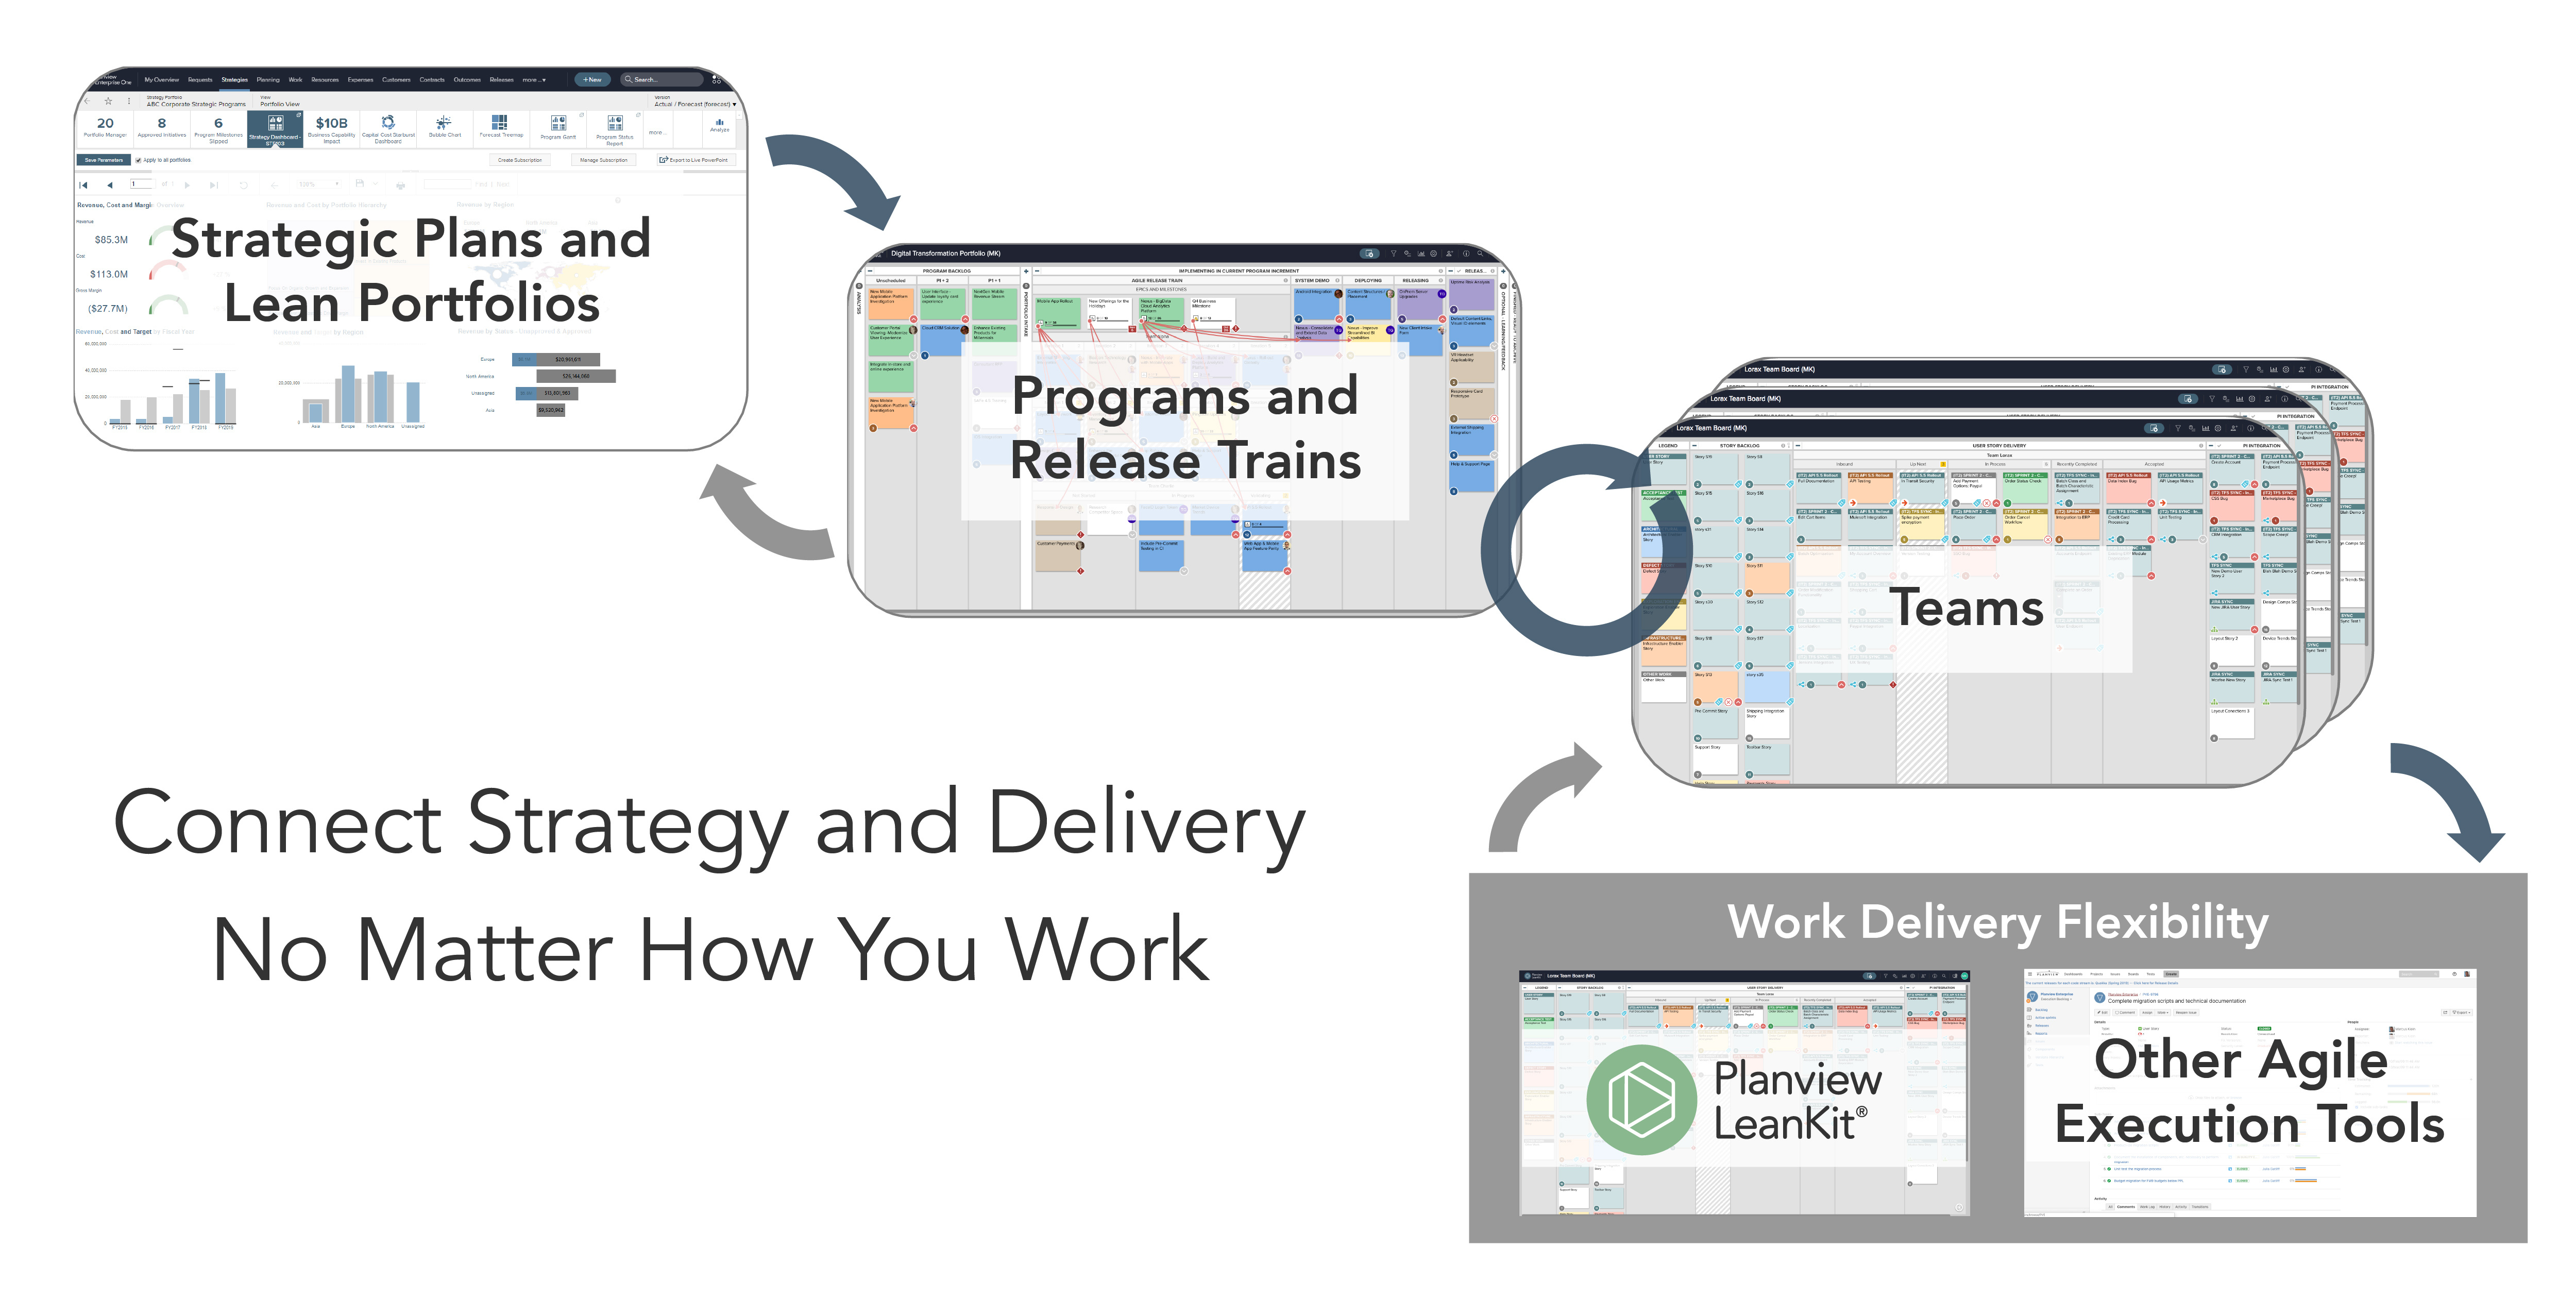 Planview Empowers Organizations to Realize Agile-at-Scale with Lean